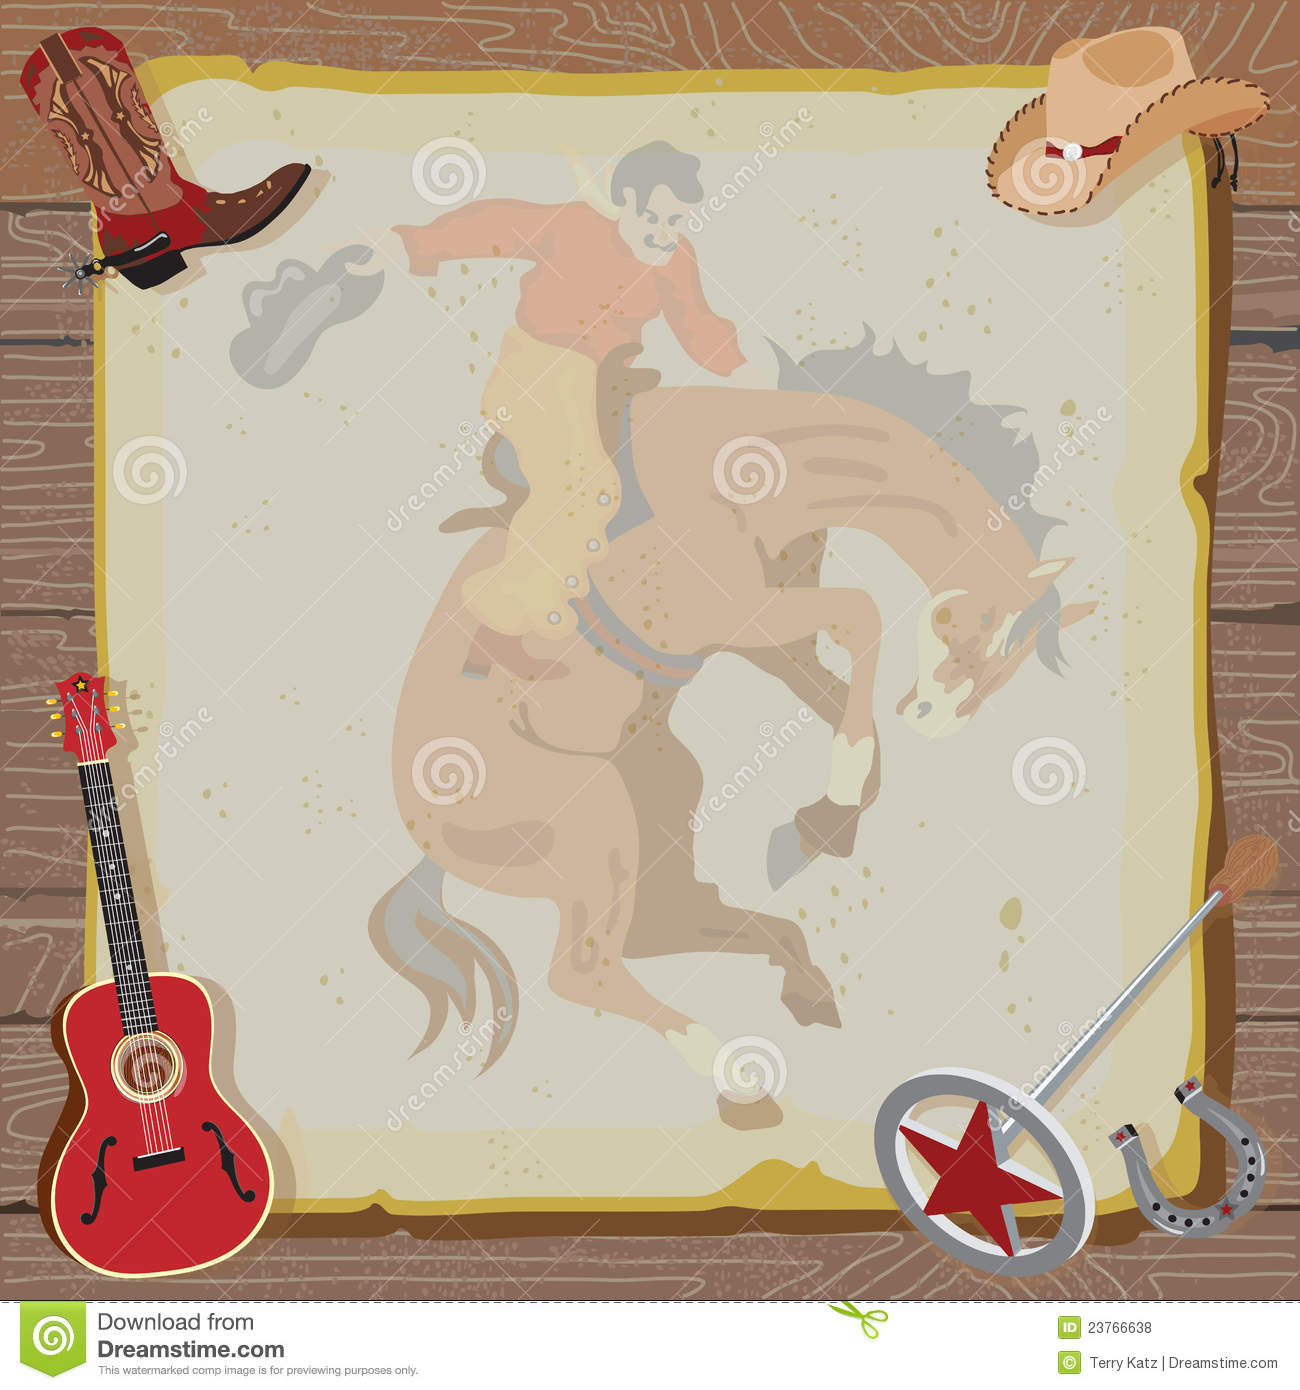 Western Rodeo Cowboy Party Invitation Stock Vector Illustration Of - Cowboy birthday invitation template